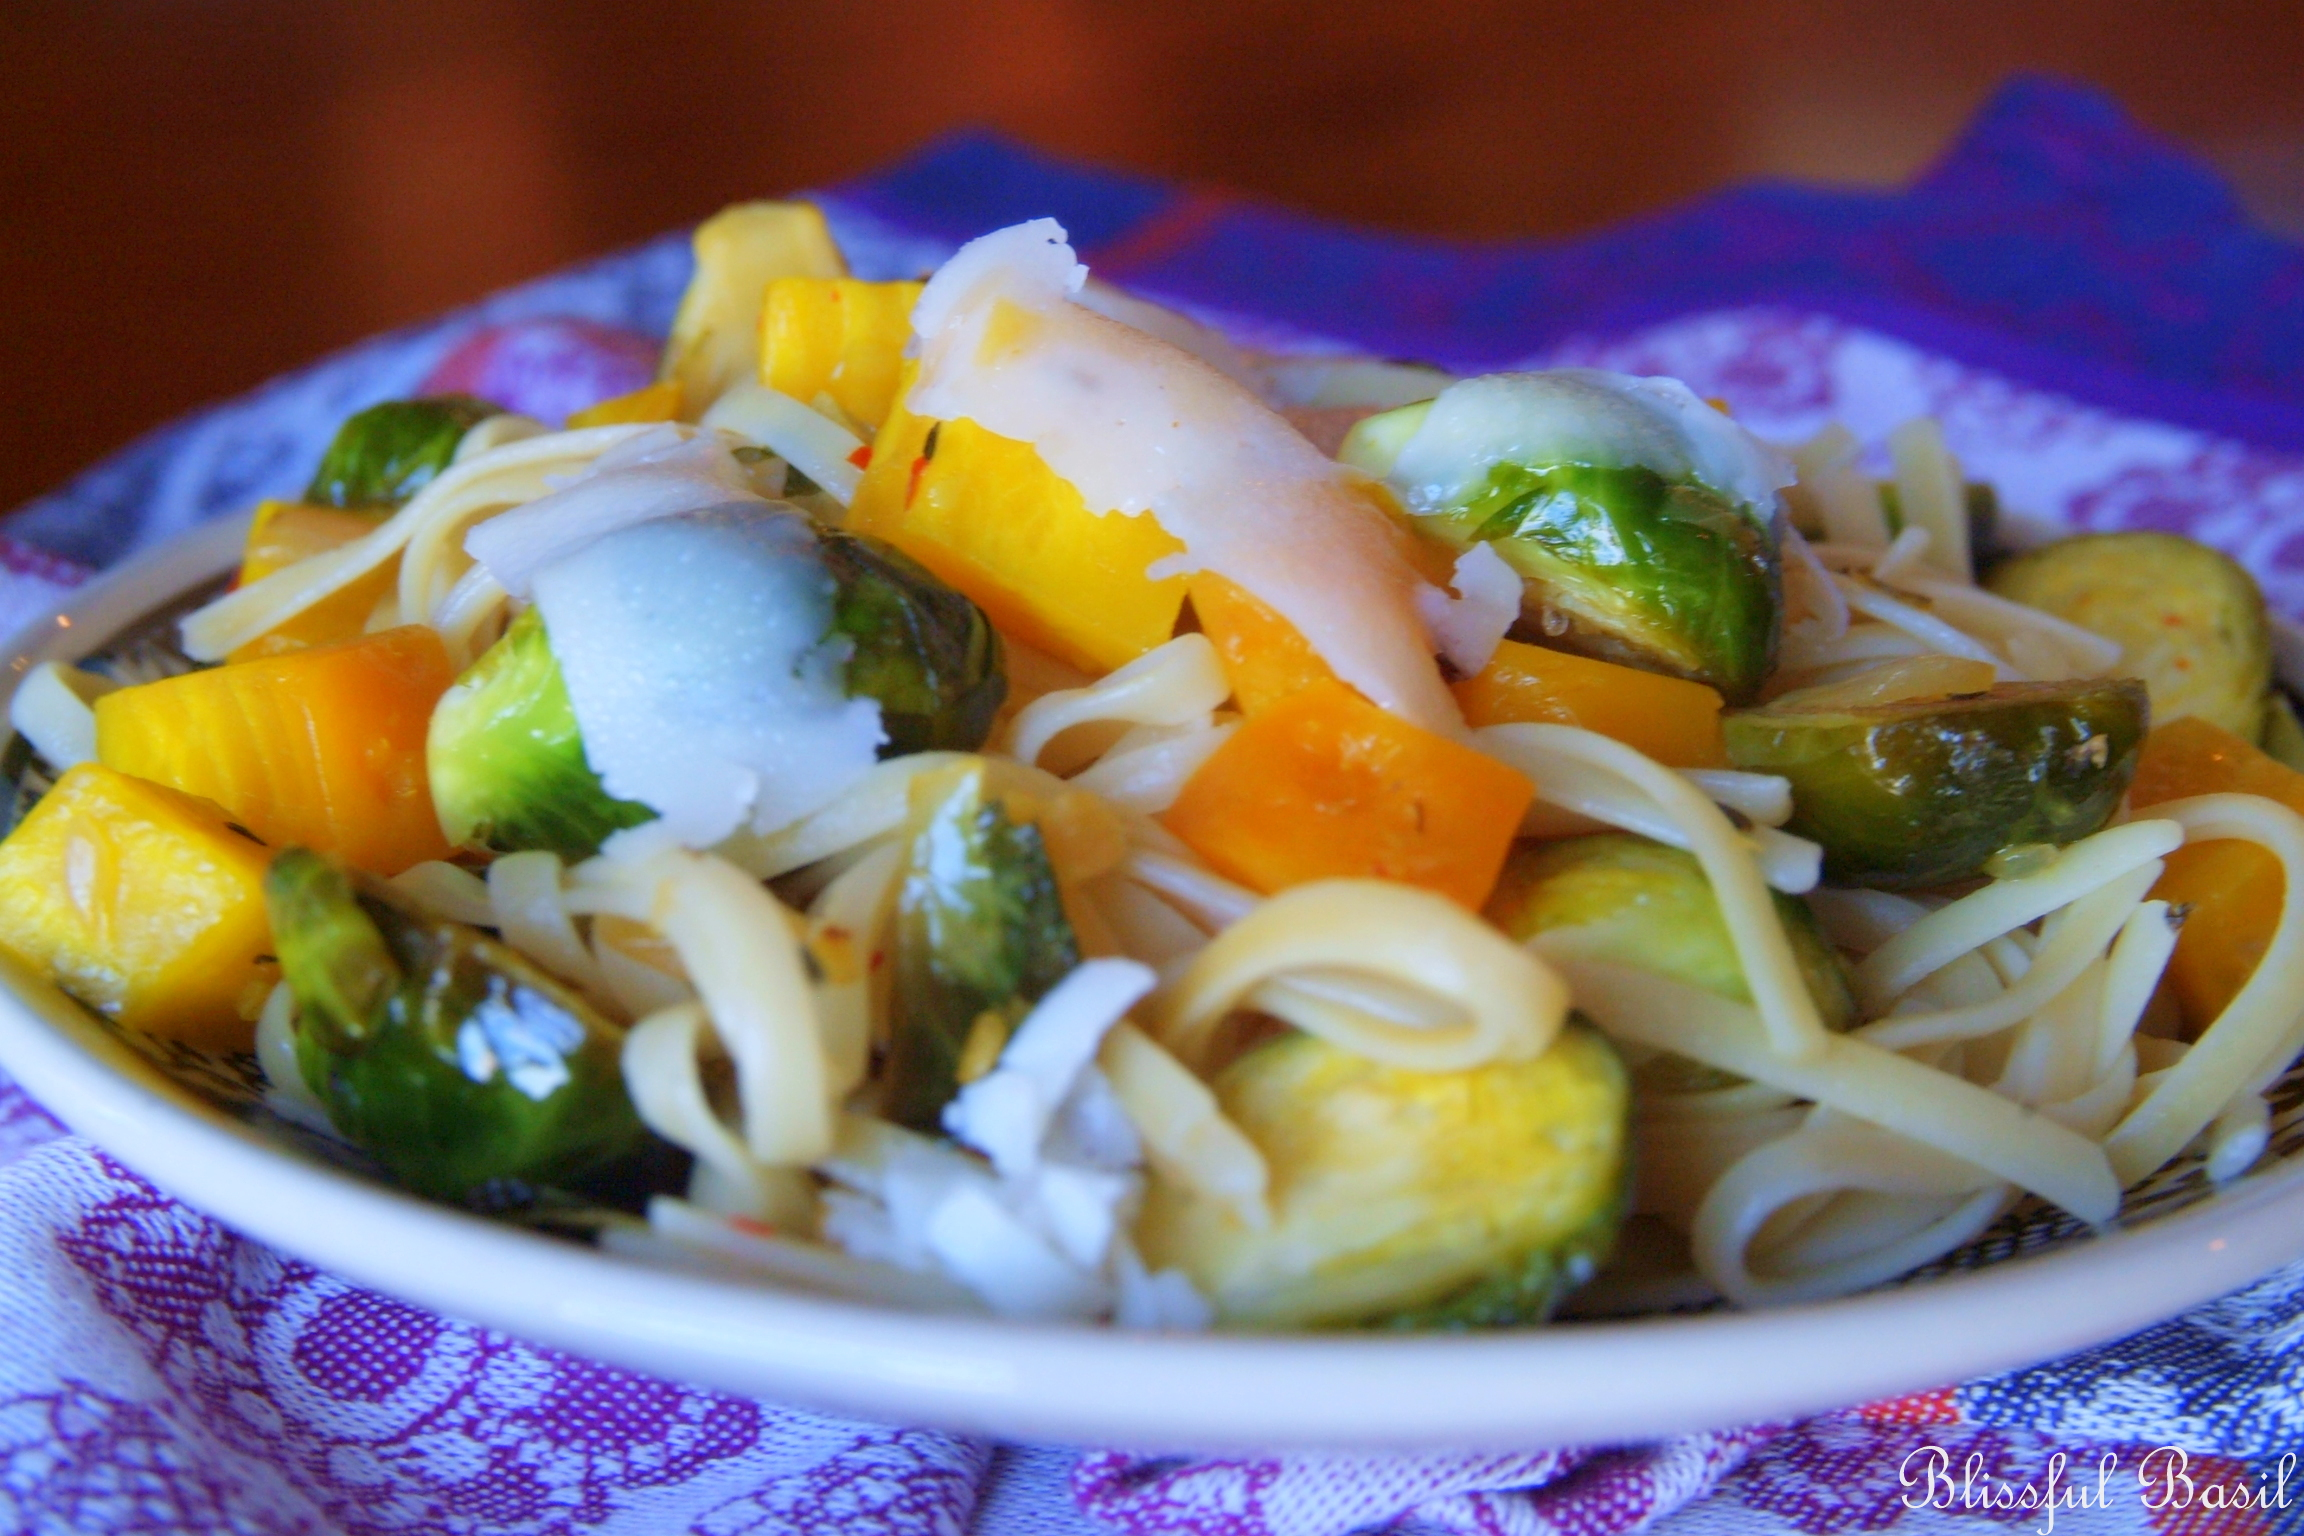 Linguine Agliolio with Golden Beets and Brussels Sprouts ...